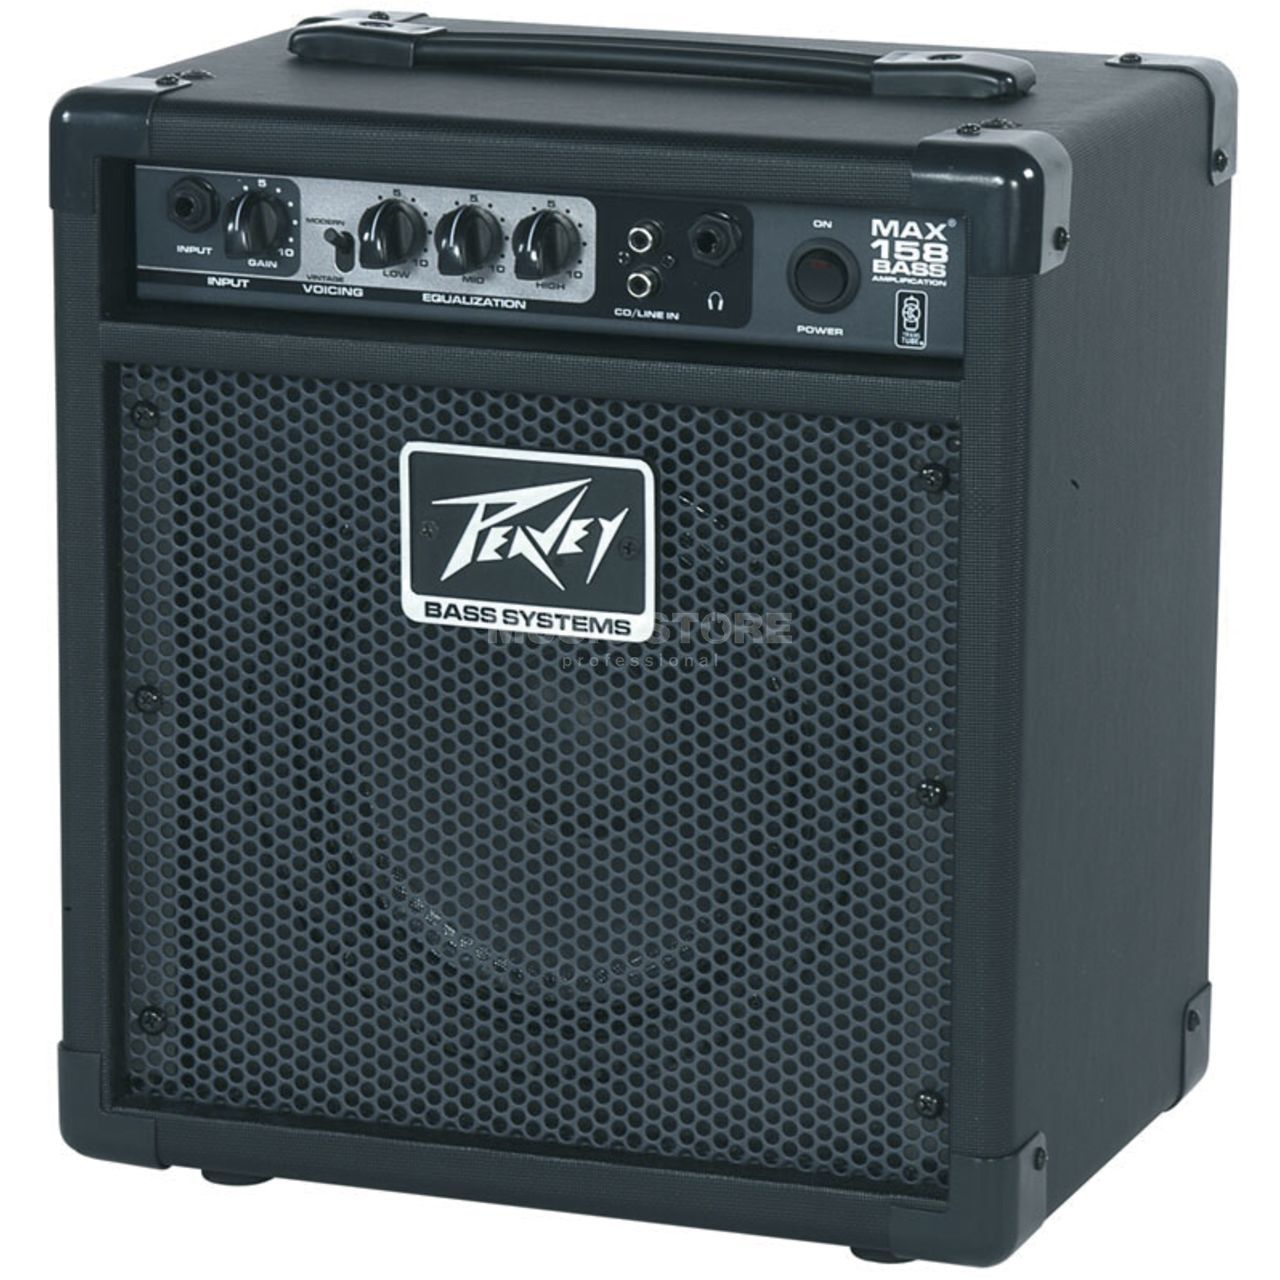 peavey max 158 bass guitar amp combo dv247 en gb. Black Bedroom Furniture Sets. Home Design Ideas